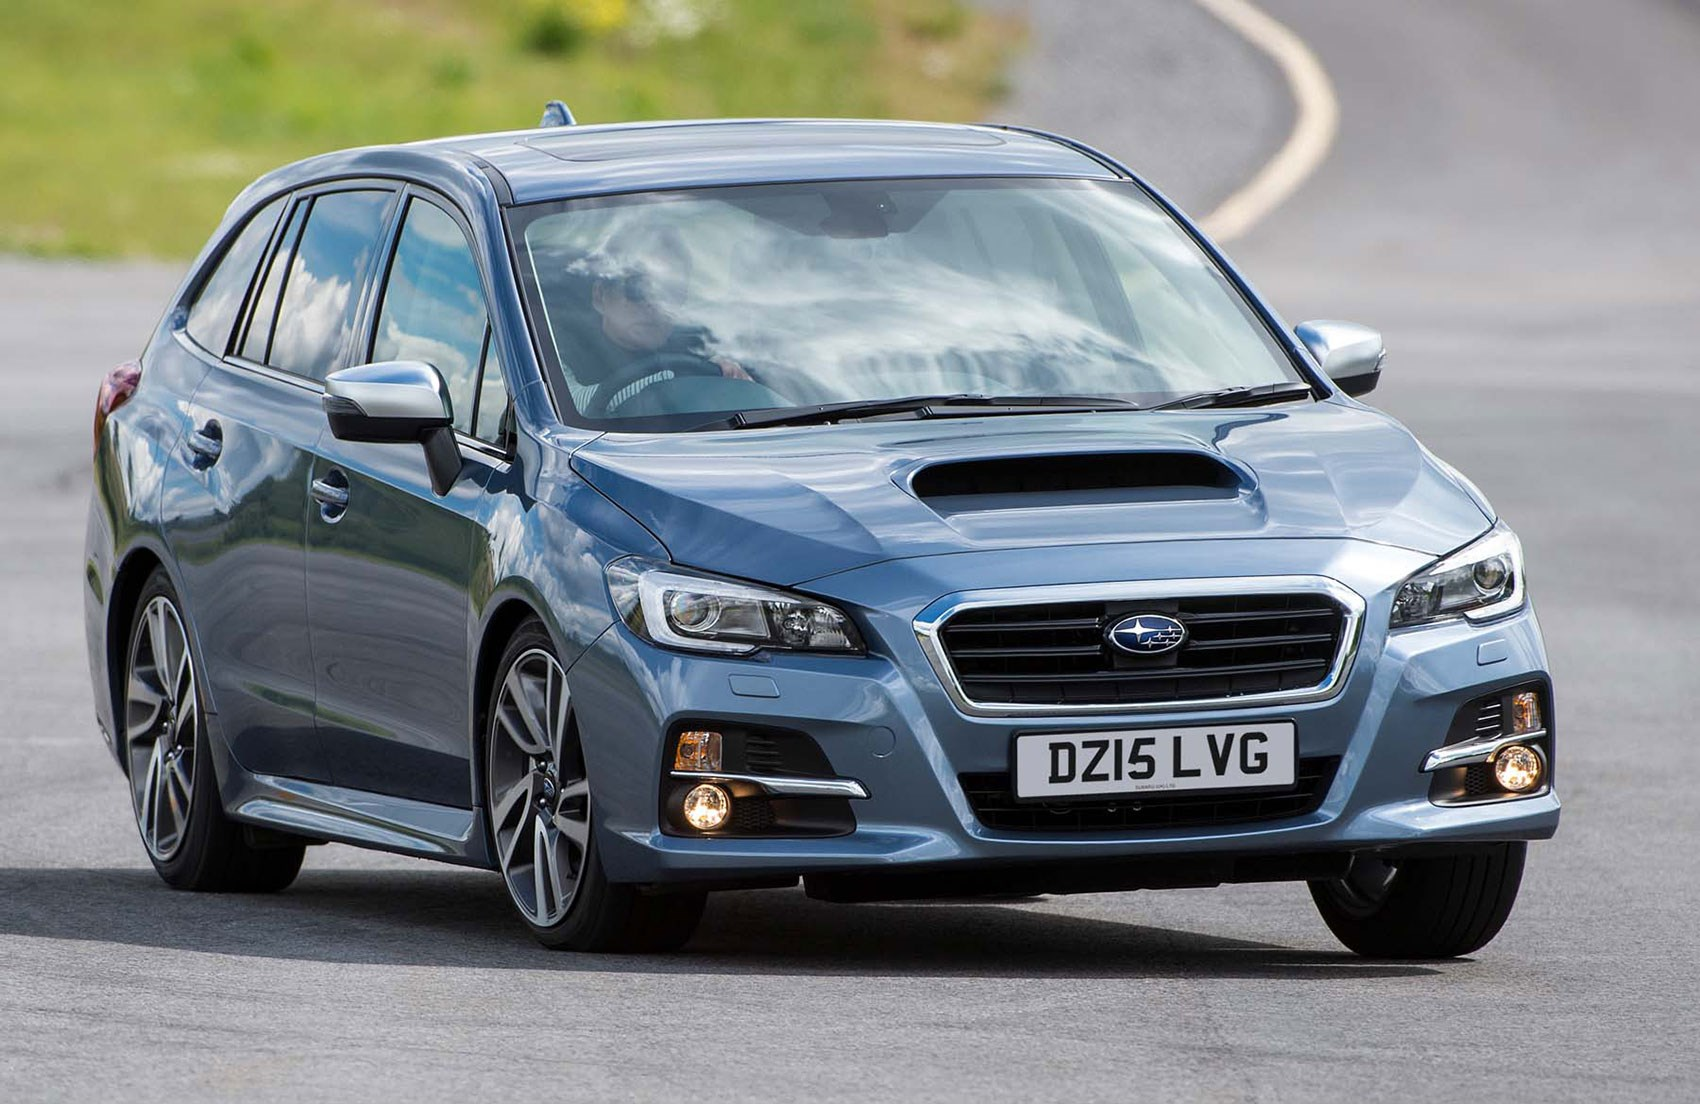 uk bound levorg promises a plusher interior than other subarus